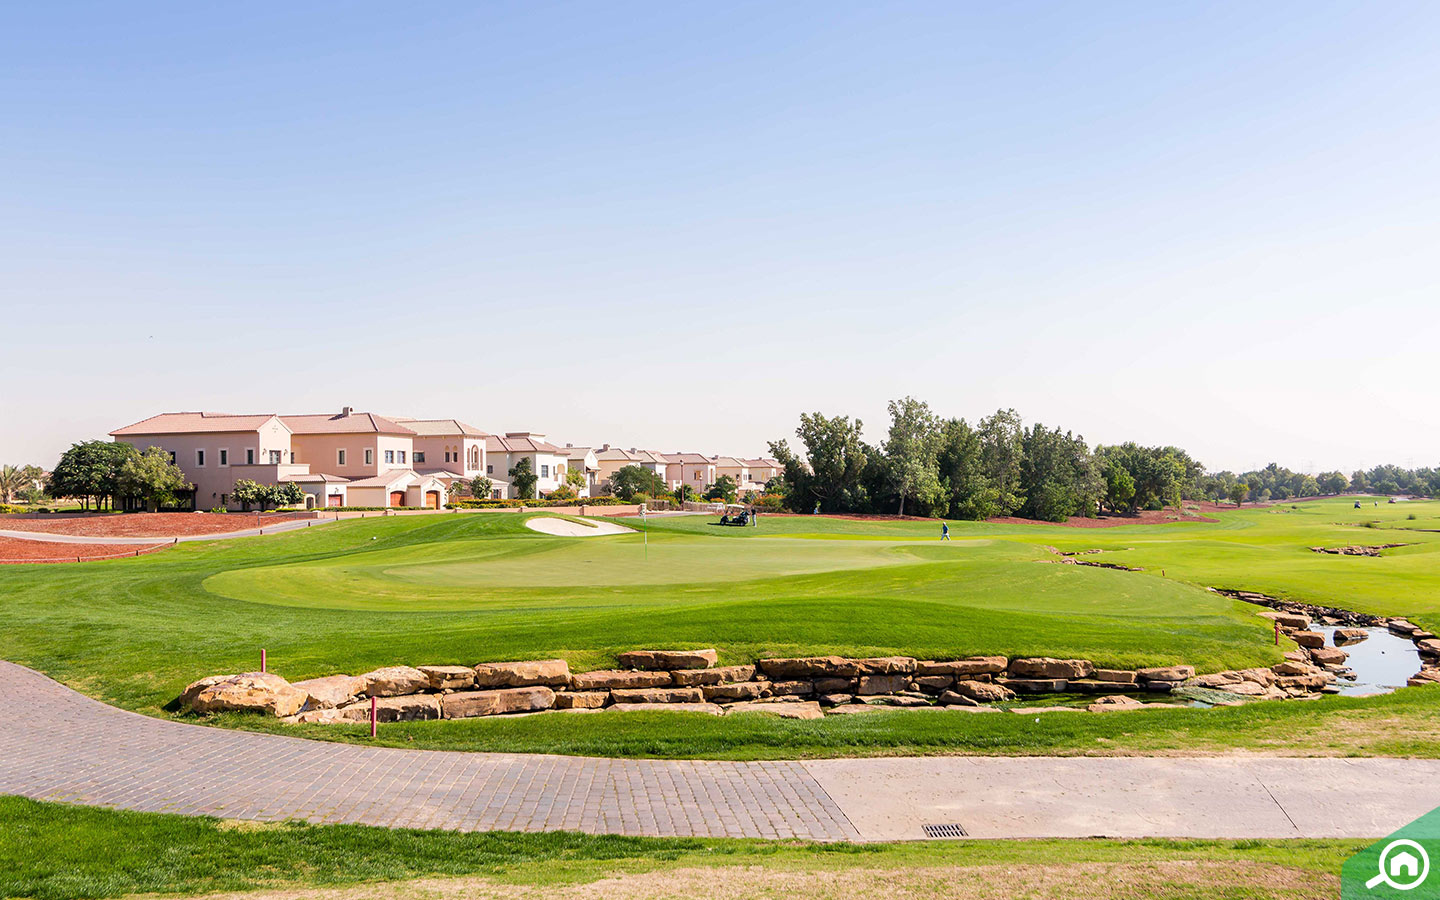 Jumeirah Golf Estate is considered one of the top golf courses in Dubai